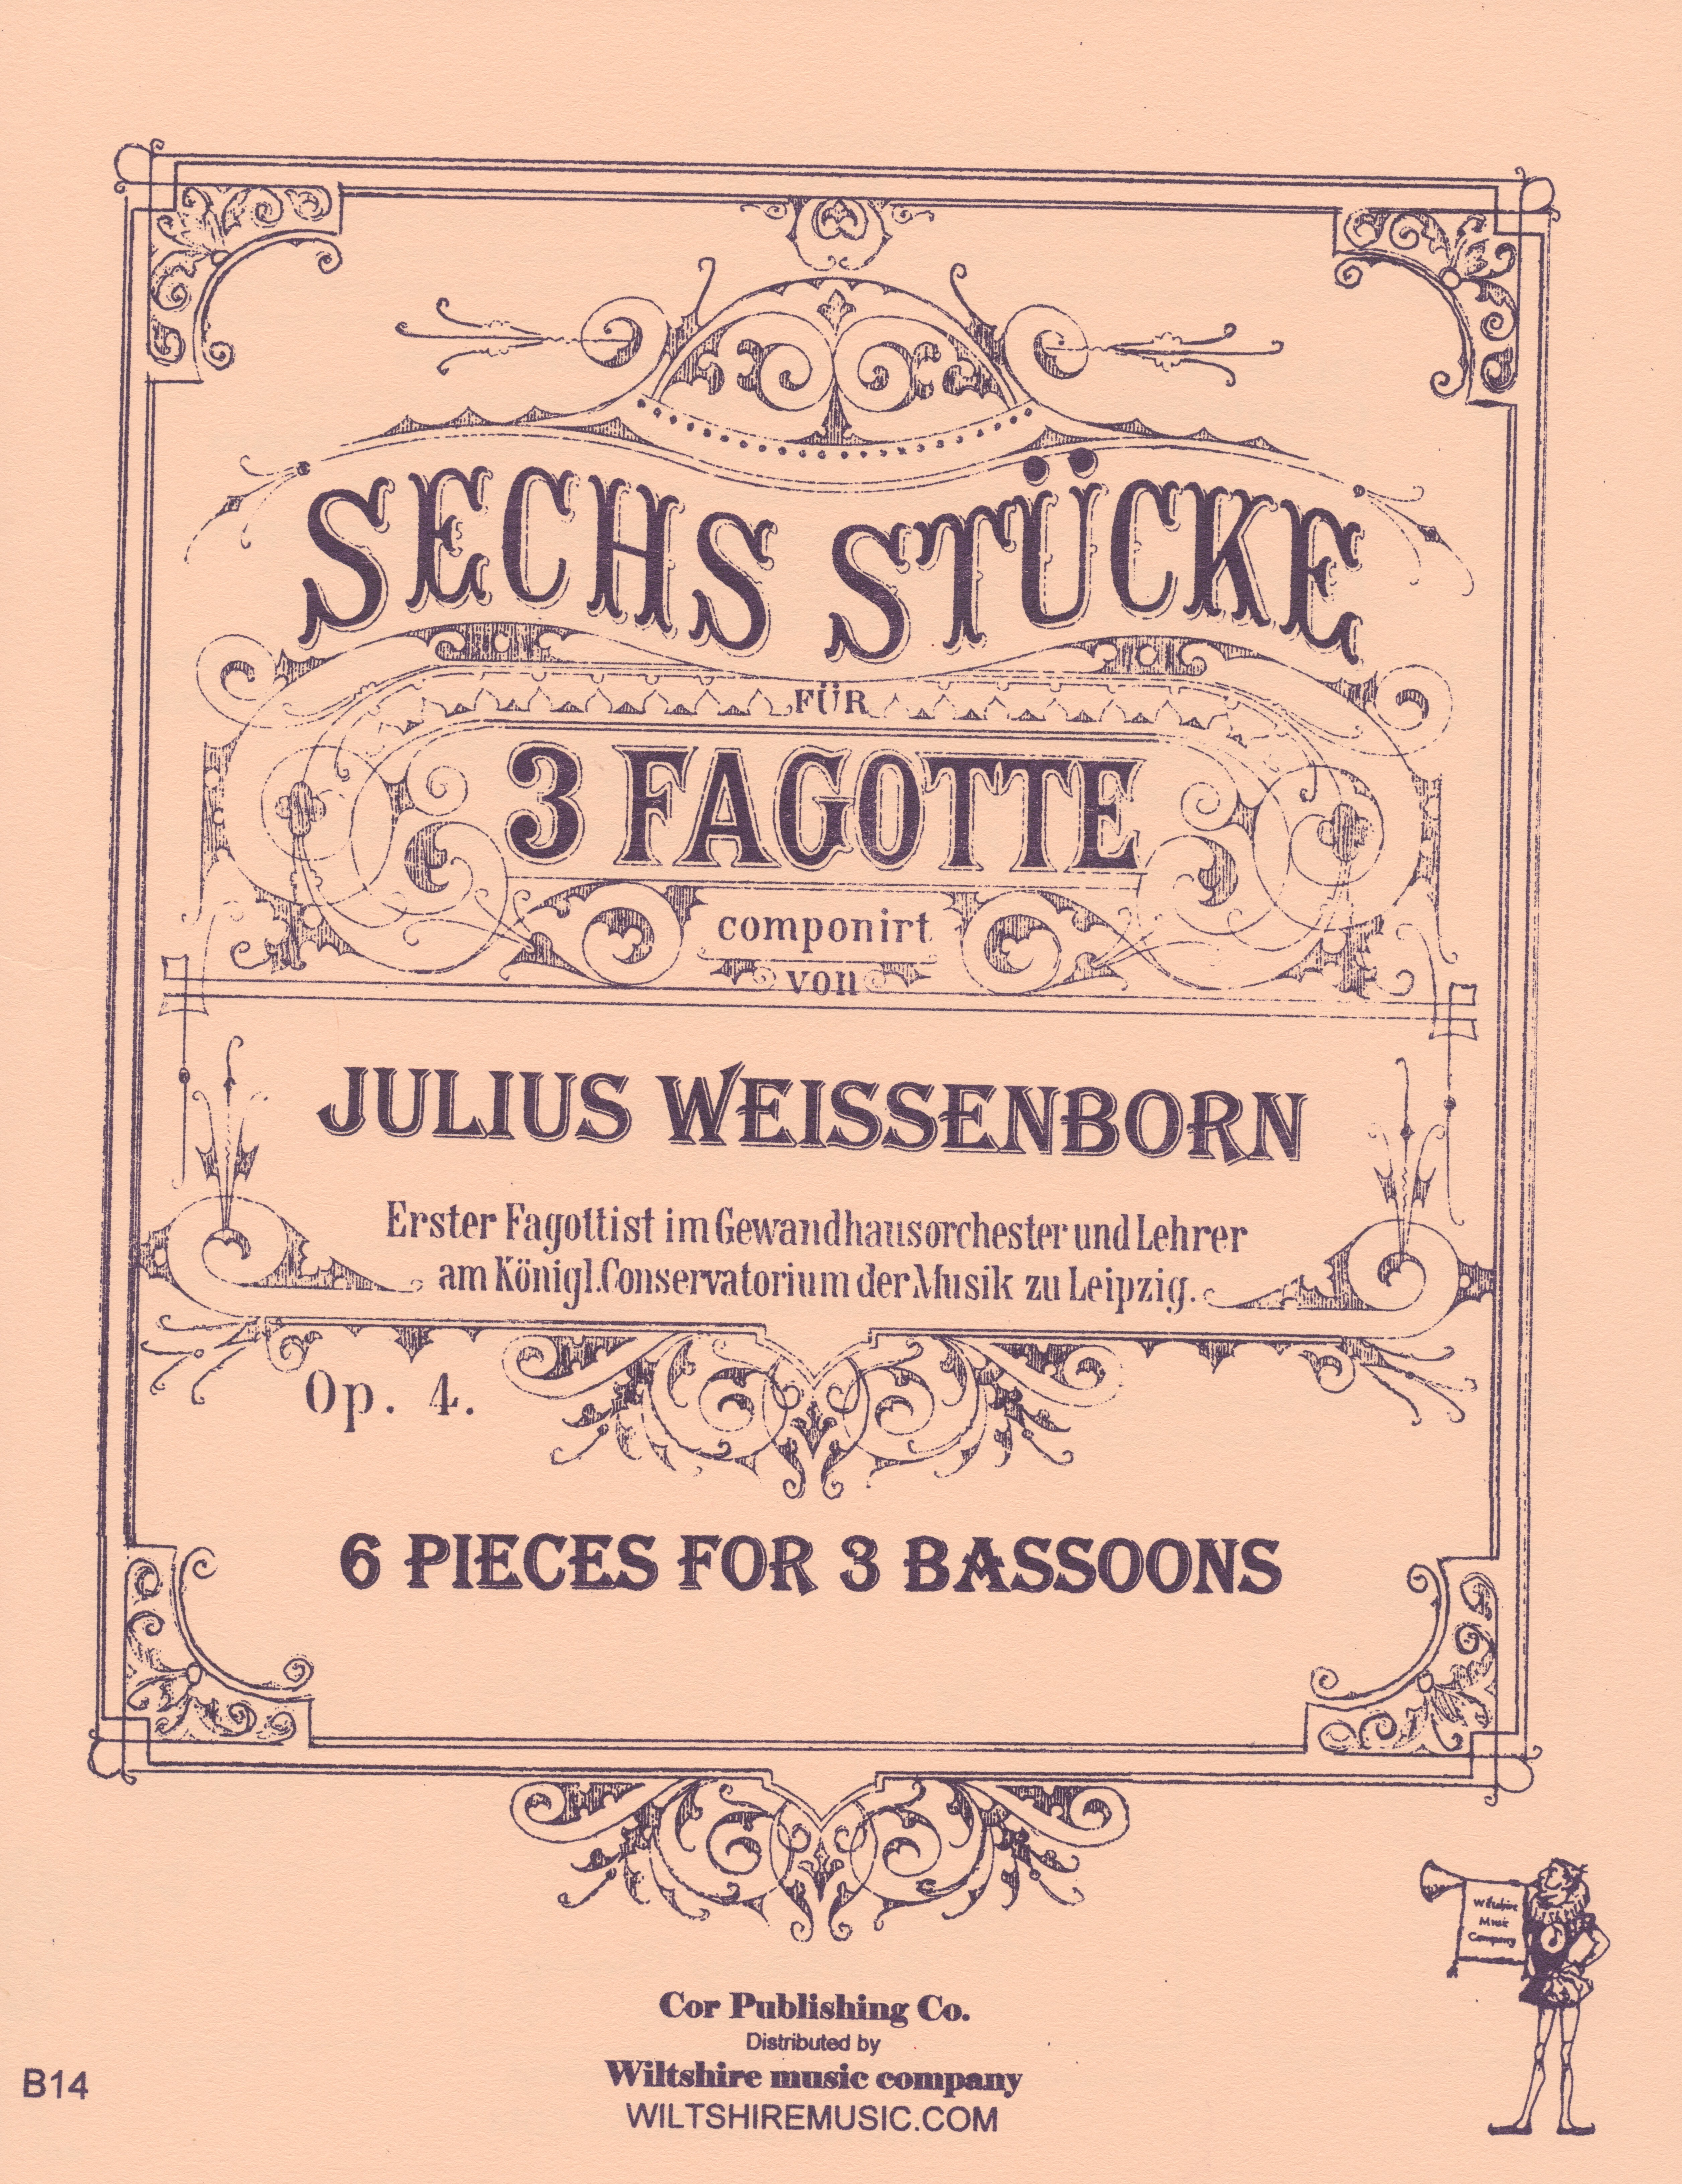 6 Pieces for 3 Bassoons, Julius Weissenborn